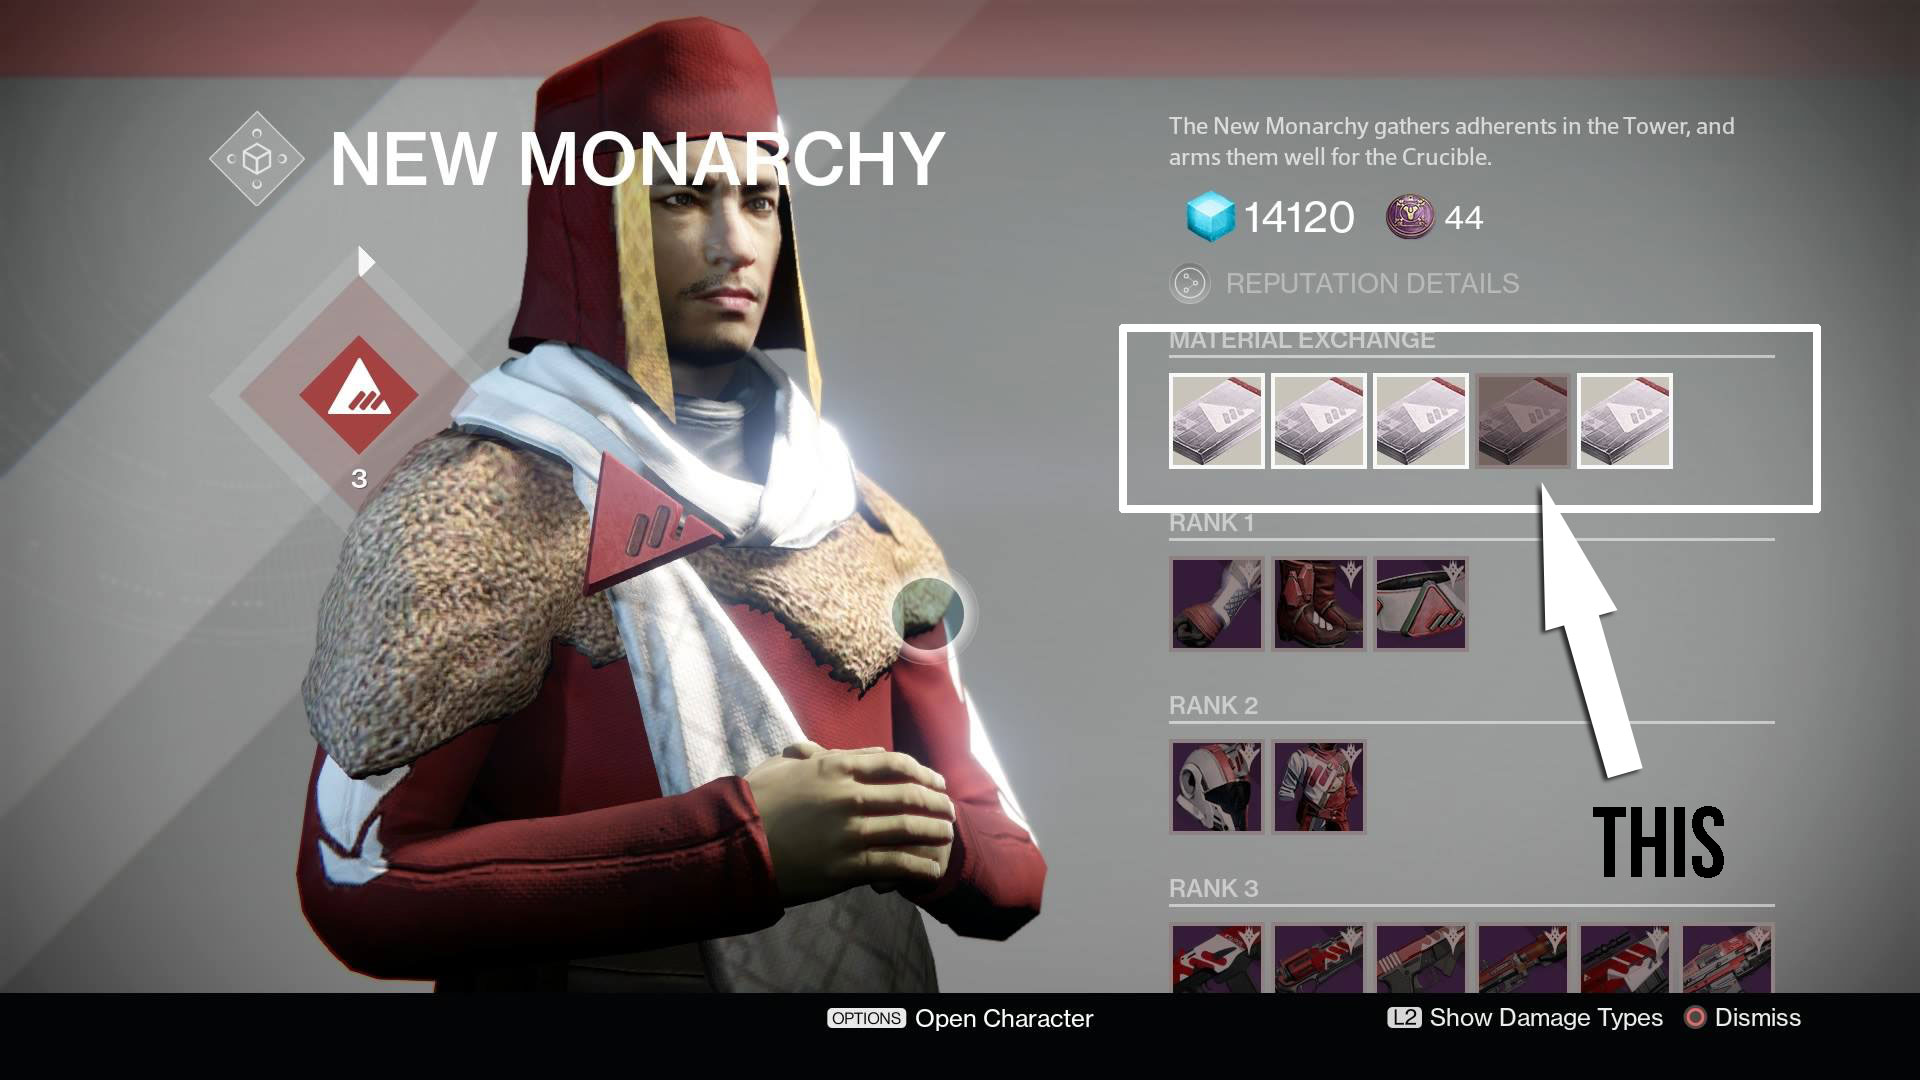 Every faction new monarchy future war cult and so on now has